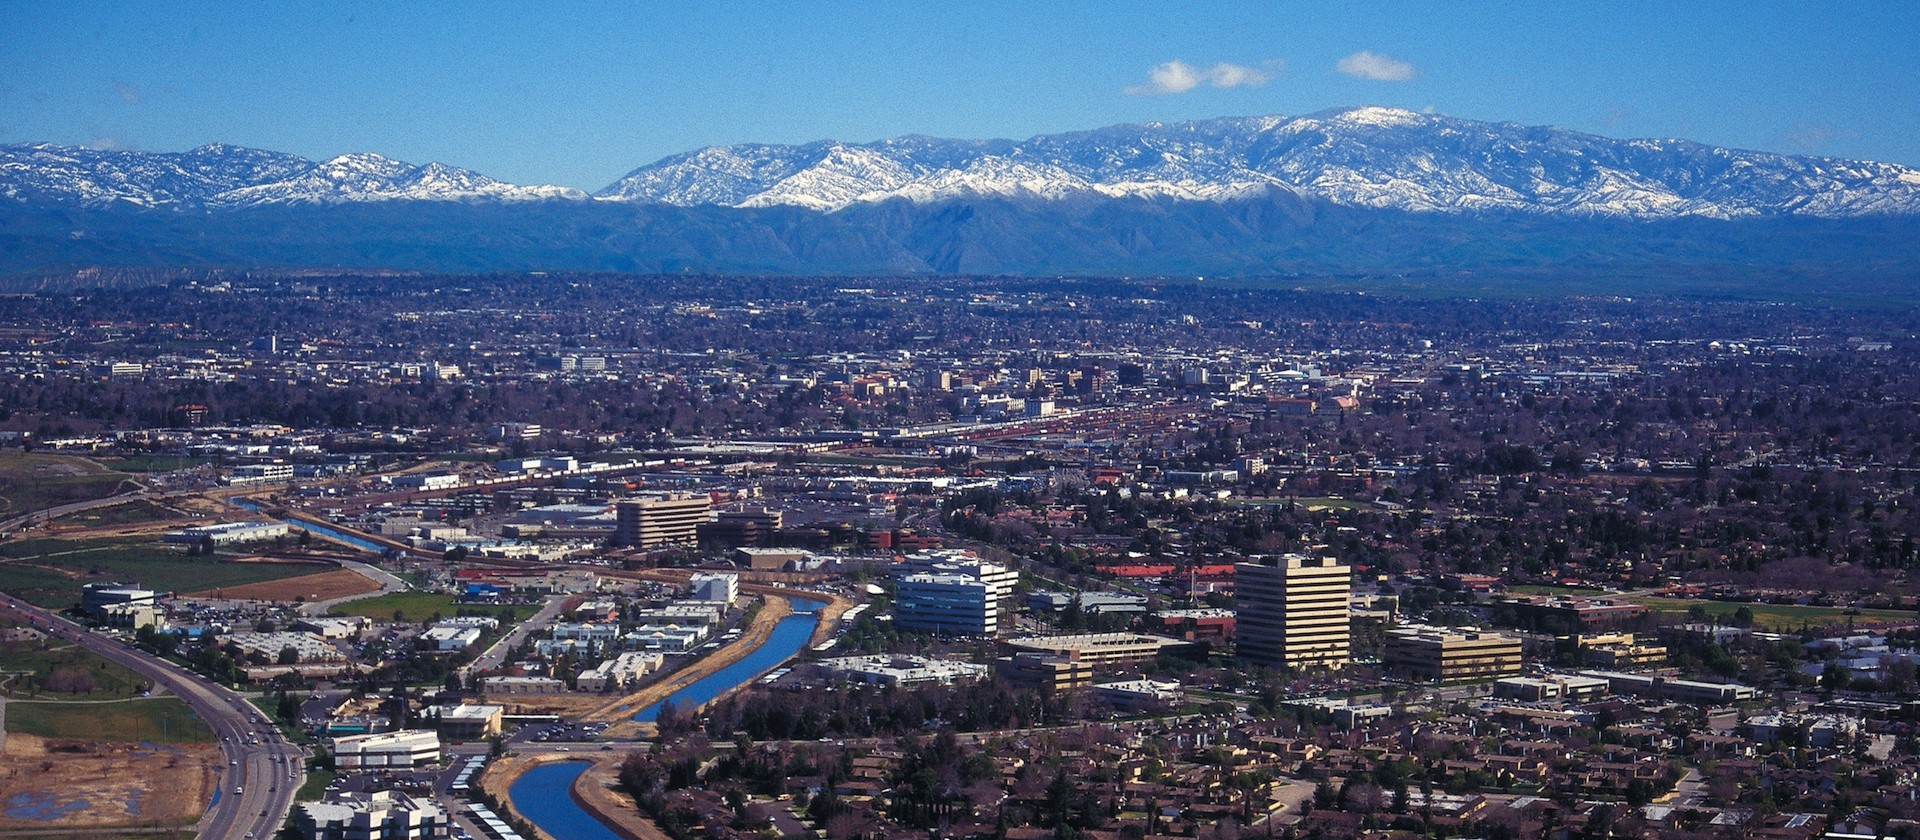 https://visit-bakersfield.s3.amazonaws.com/CMS/2030/aerial_trux-calif__large.jpg